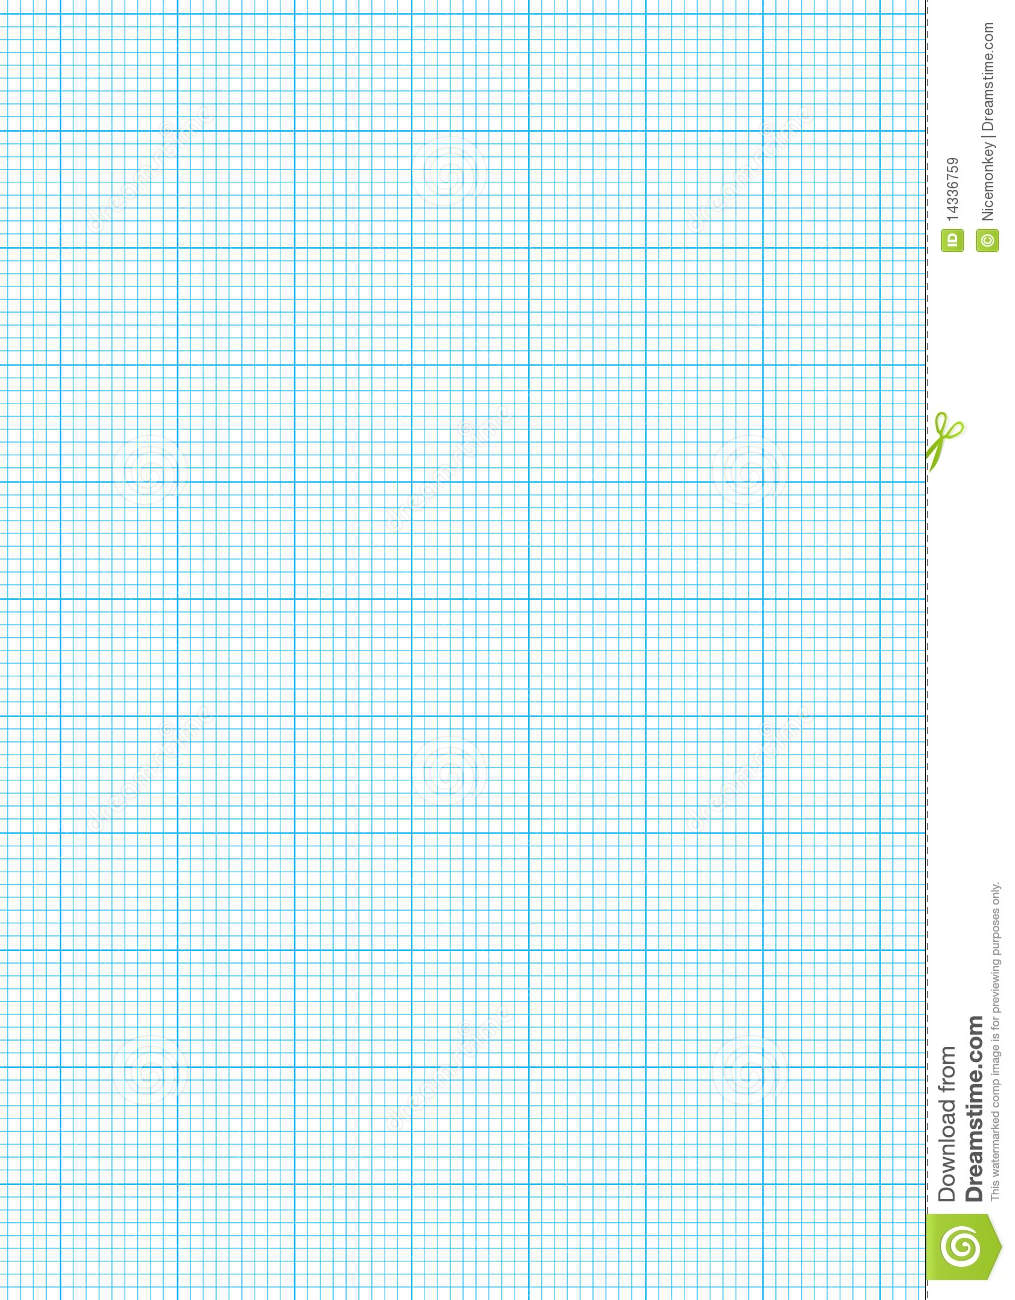 grid paper for math Math graph paper notebook 1/2 inch squares 120 pages: notebook perfect for school math with light blue cover, 85 x 11 graph paper with 1/2 inch sums, composition notebook or even journal [spicy journals] on amazoncom free shipping on qualifying offers graph paper notebook with 120 pages with half inch.